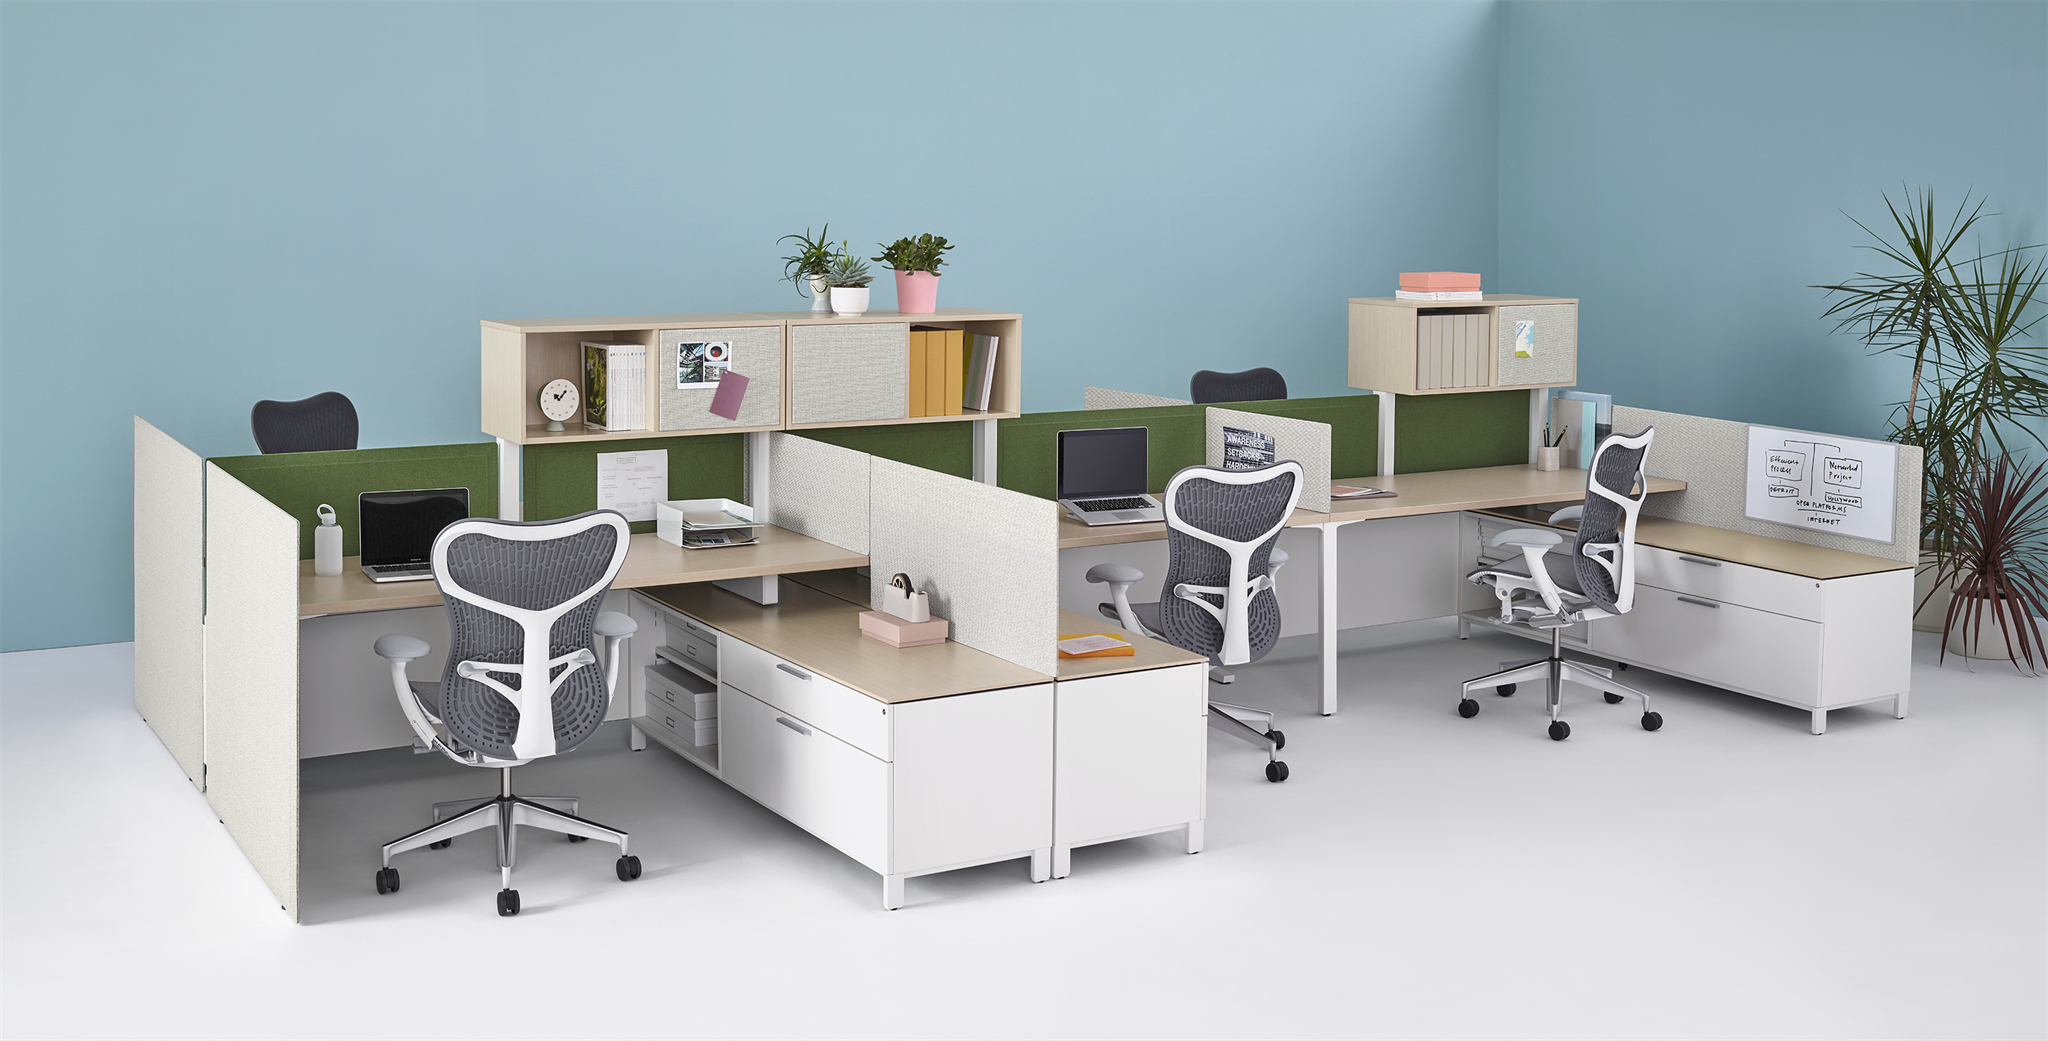 90 Recycling Of Office Furniture